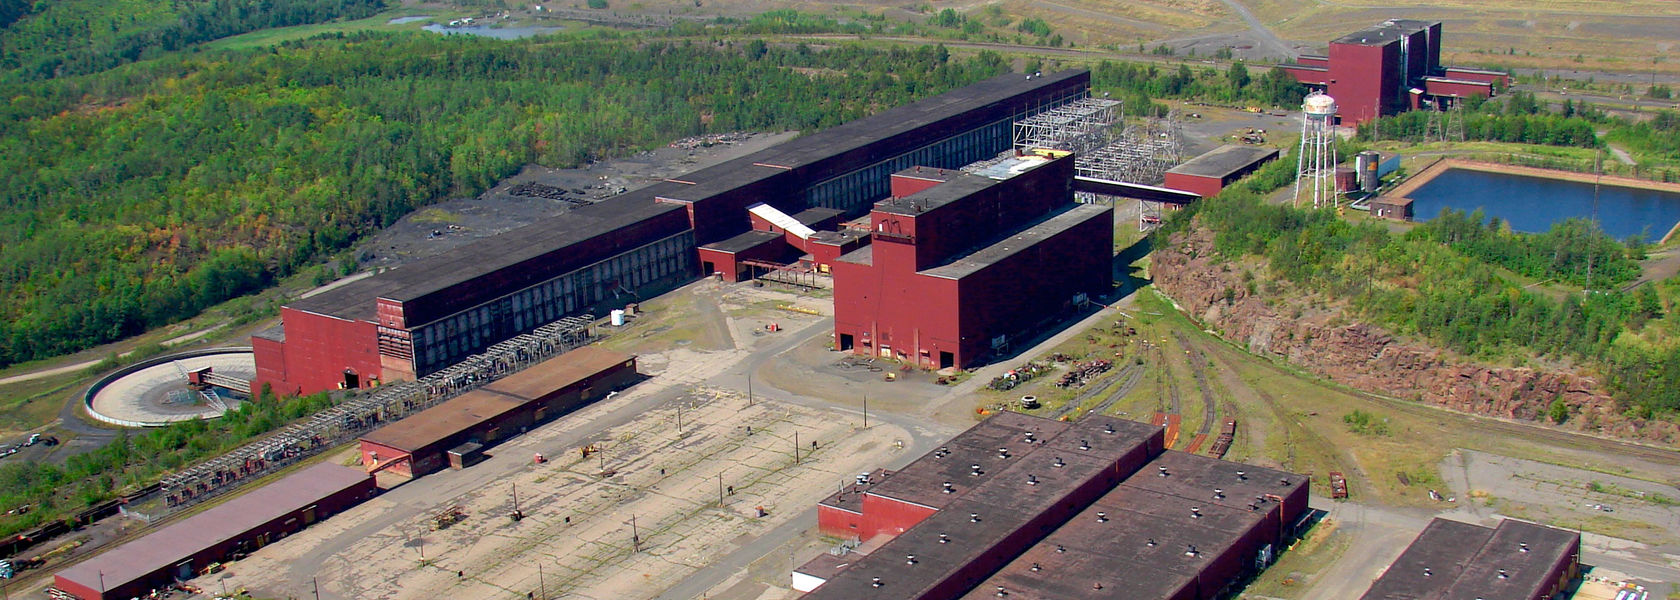 Supreme Court will hear appeal on PolyMet permits